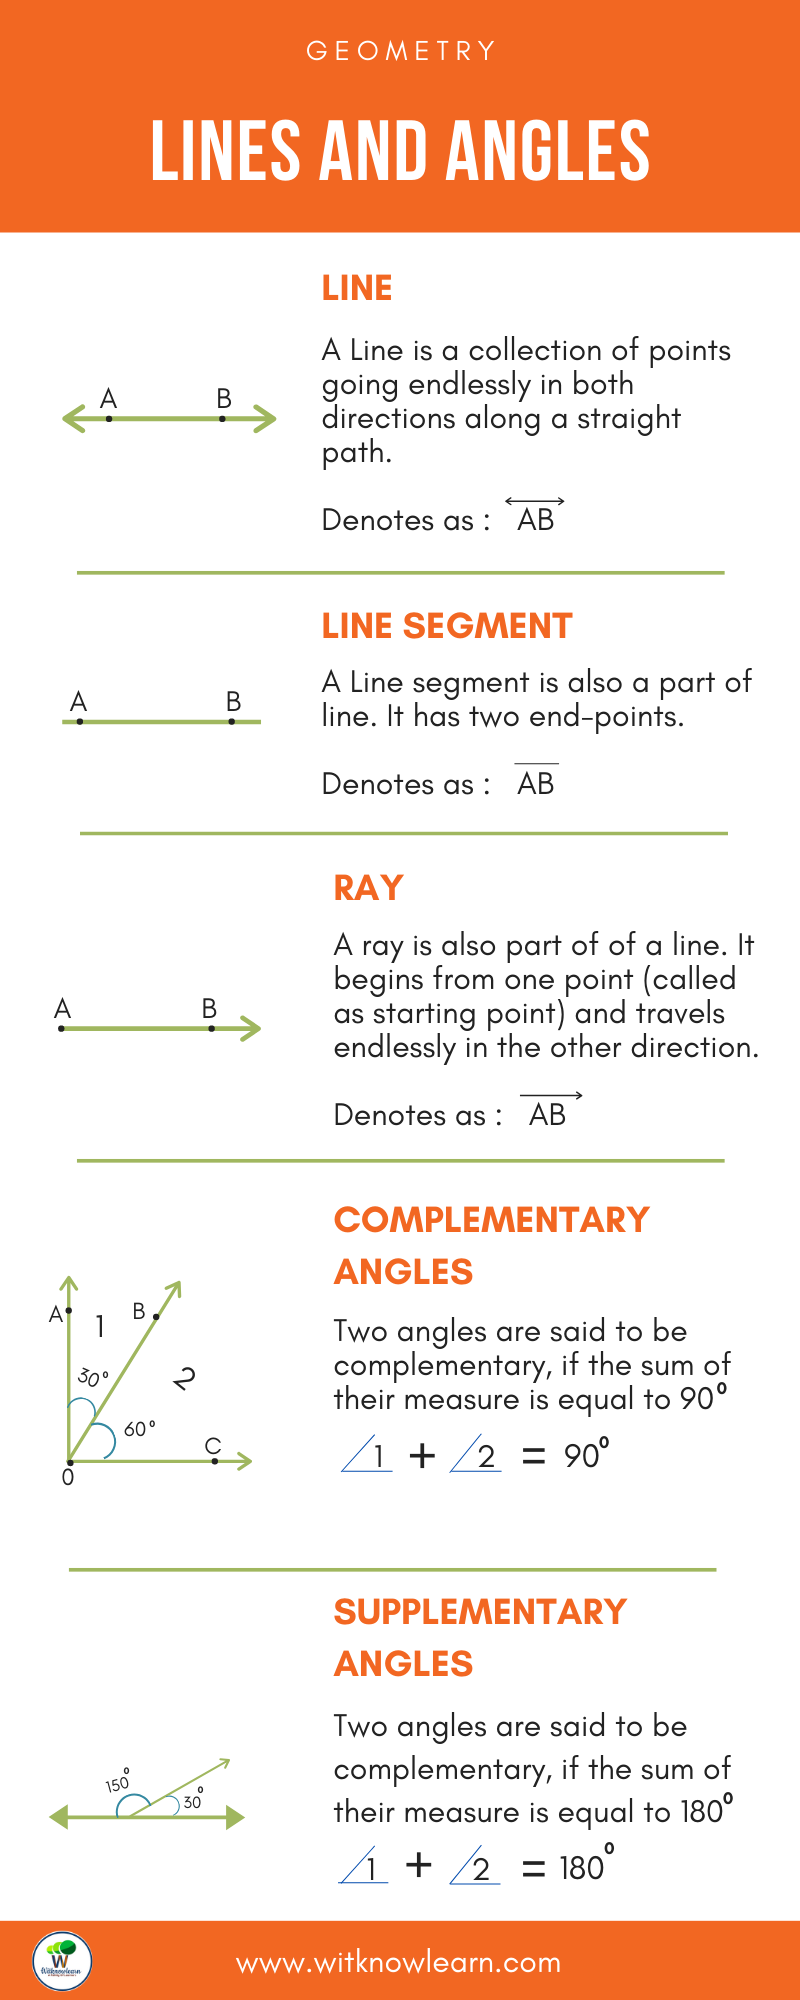 Geometry Lines and Angles in 2020 Angles worksheet